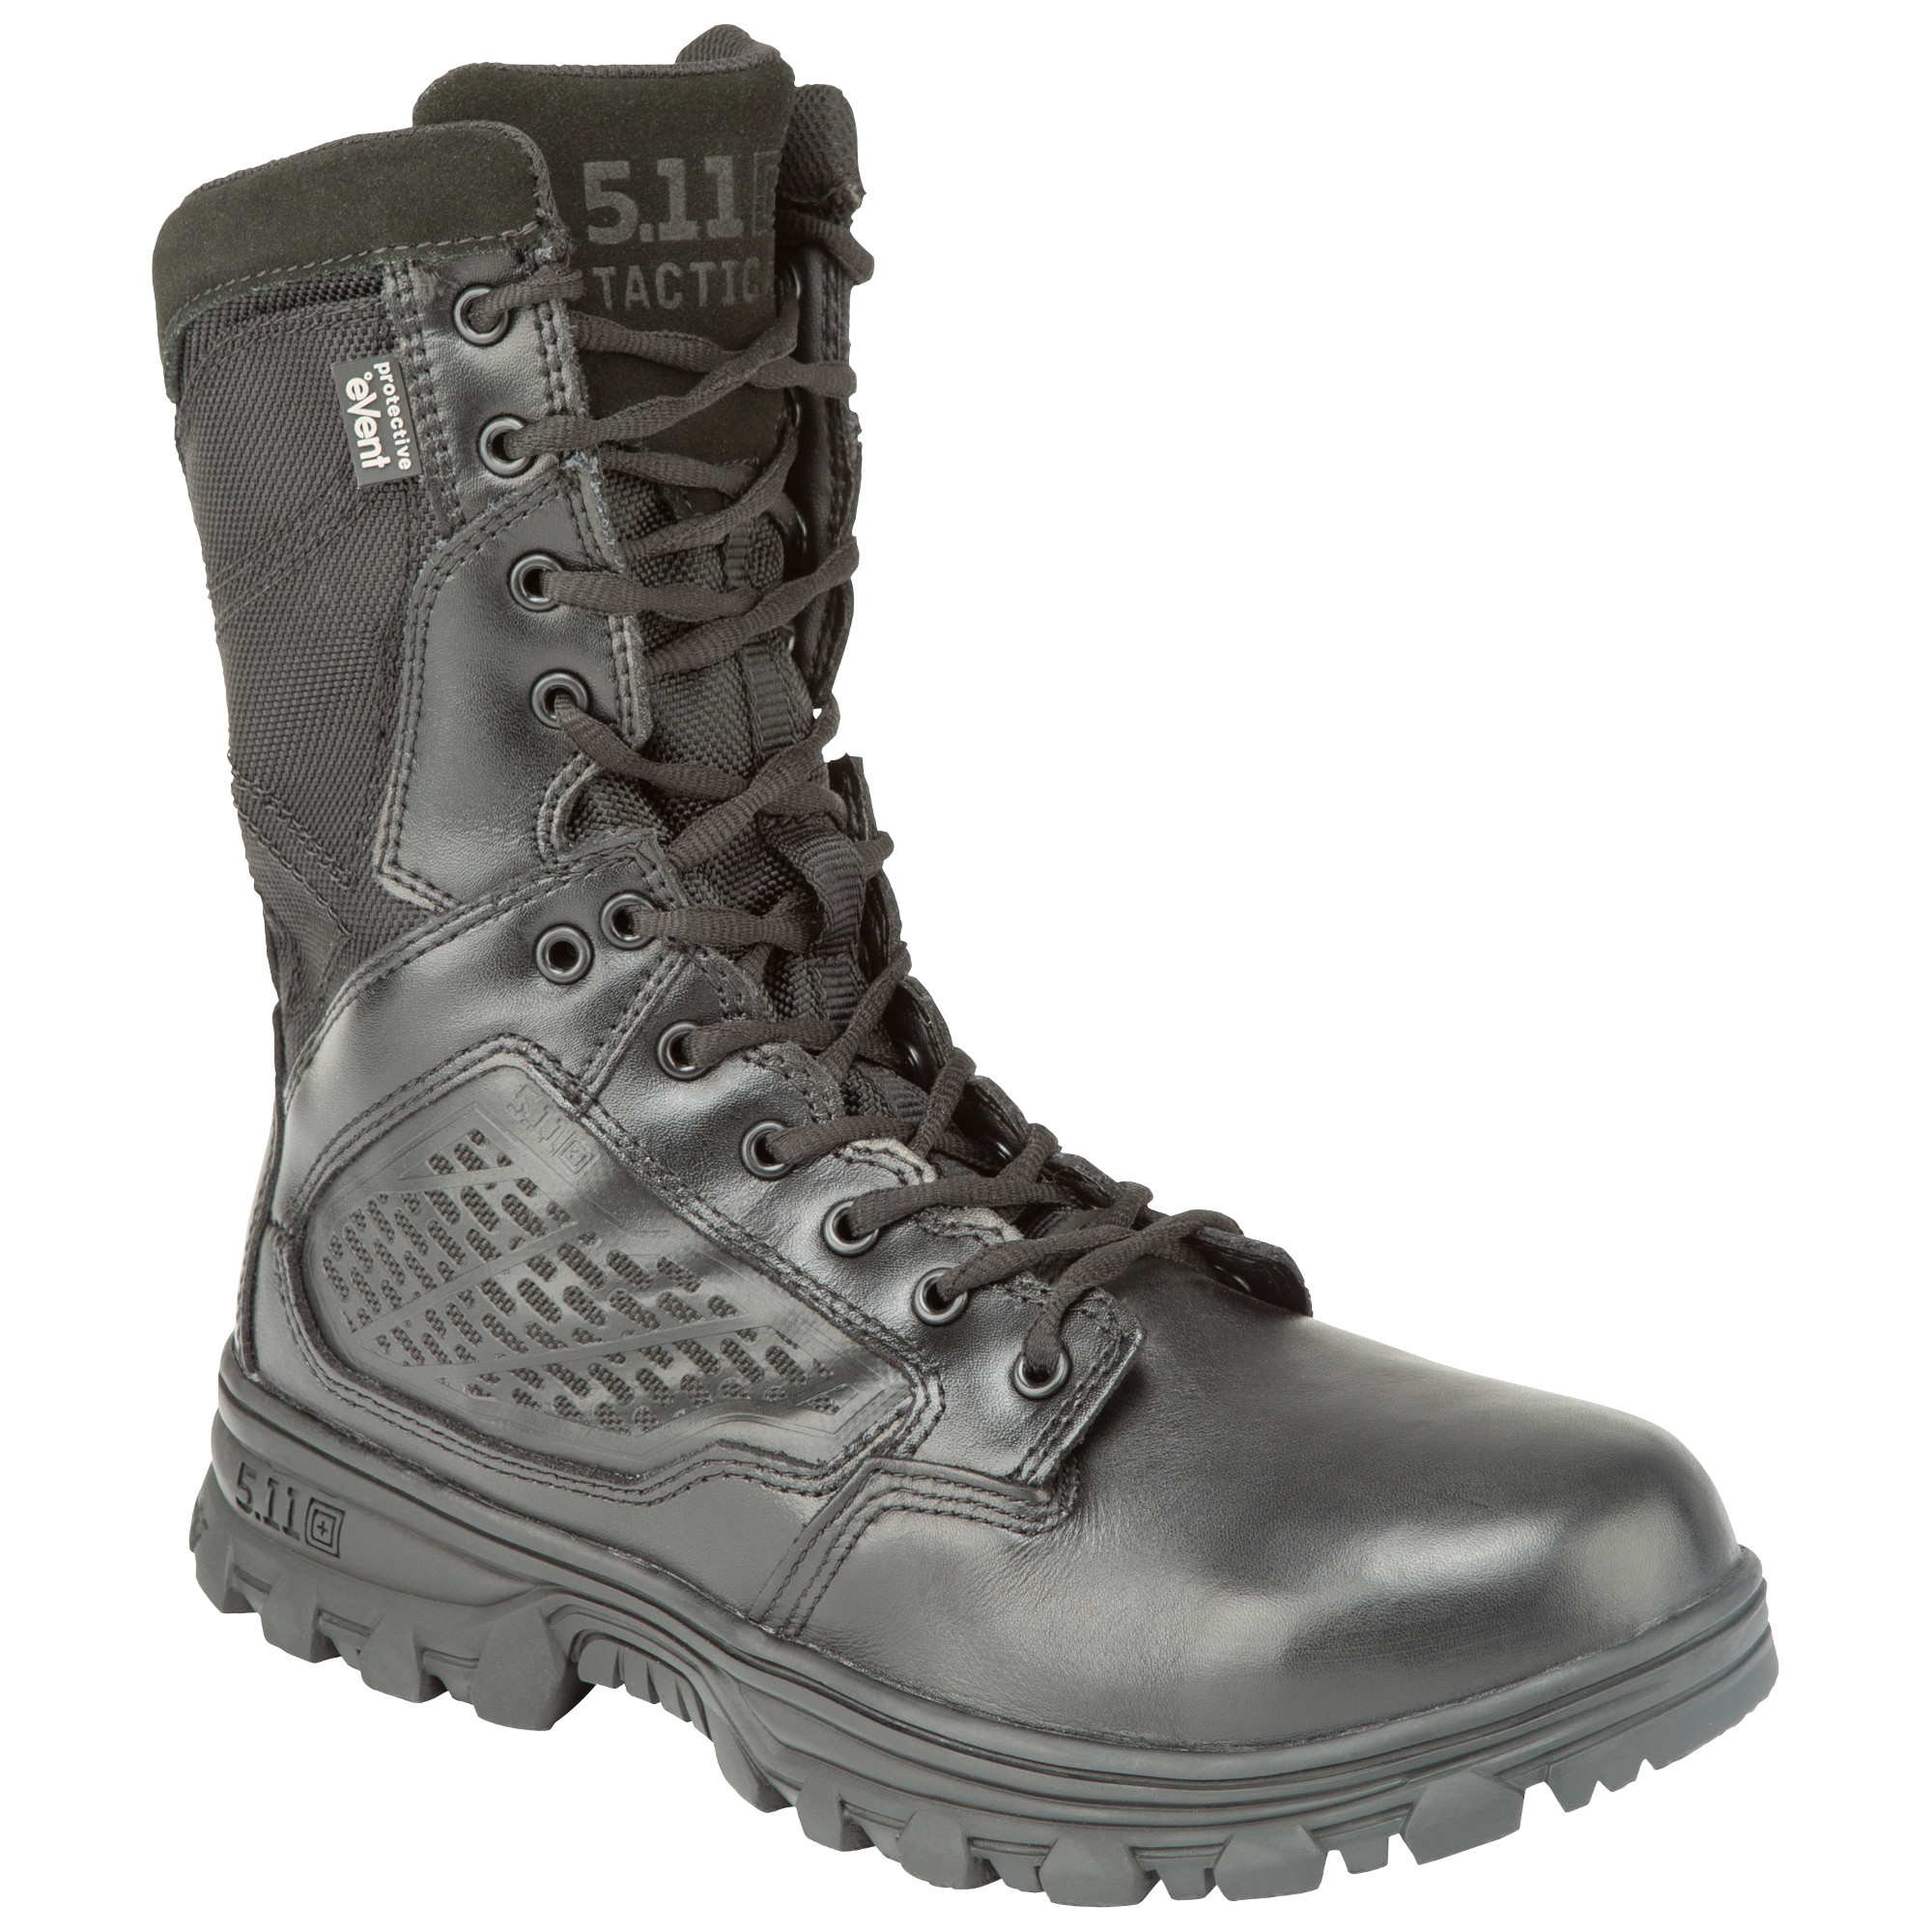 5.11 Tactical Men's EVO 8 Waterproof Boot with Sidezip thumbnail